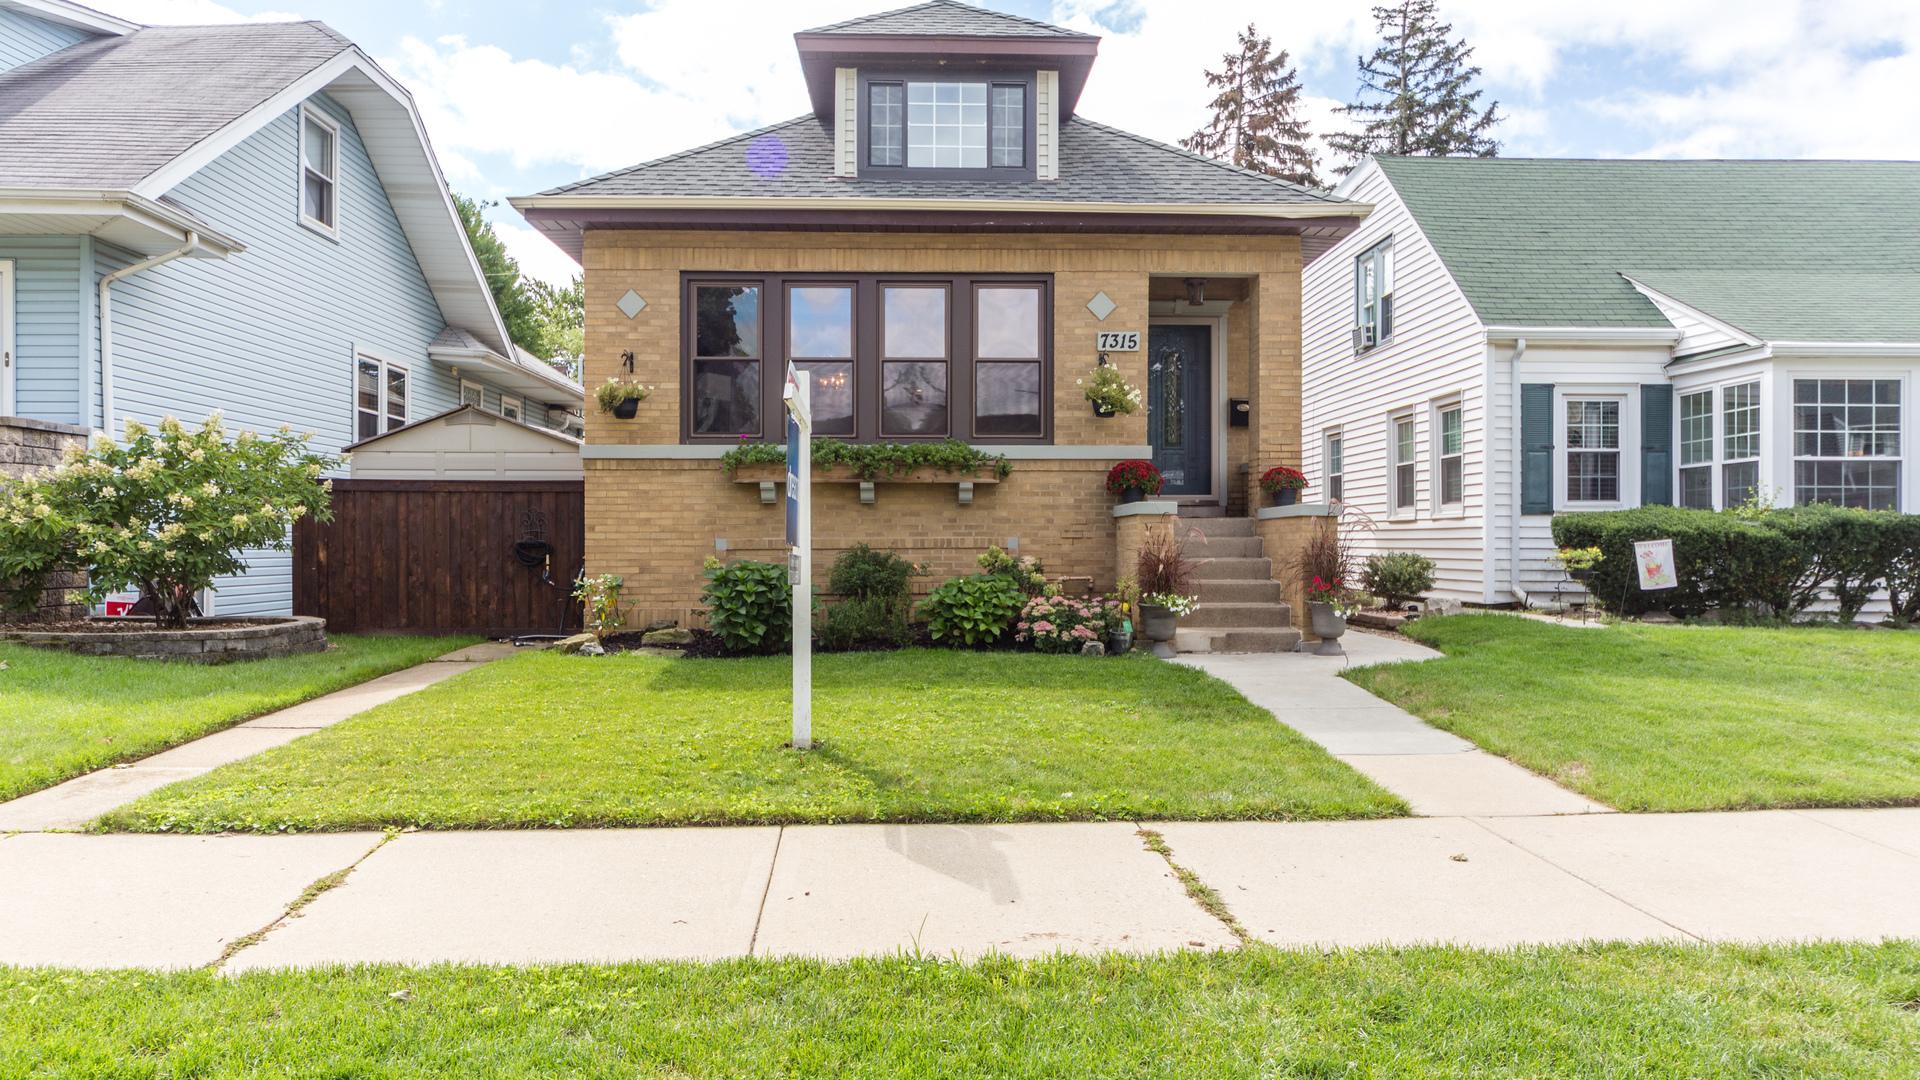 7315 West COYLE Avenue, Chicago-Edison Park in Cook County, IL 60631 Home for Sale